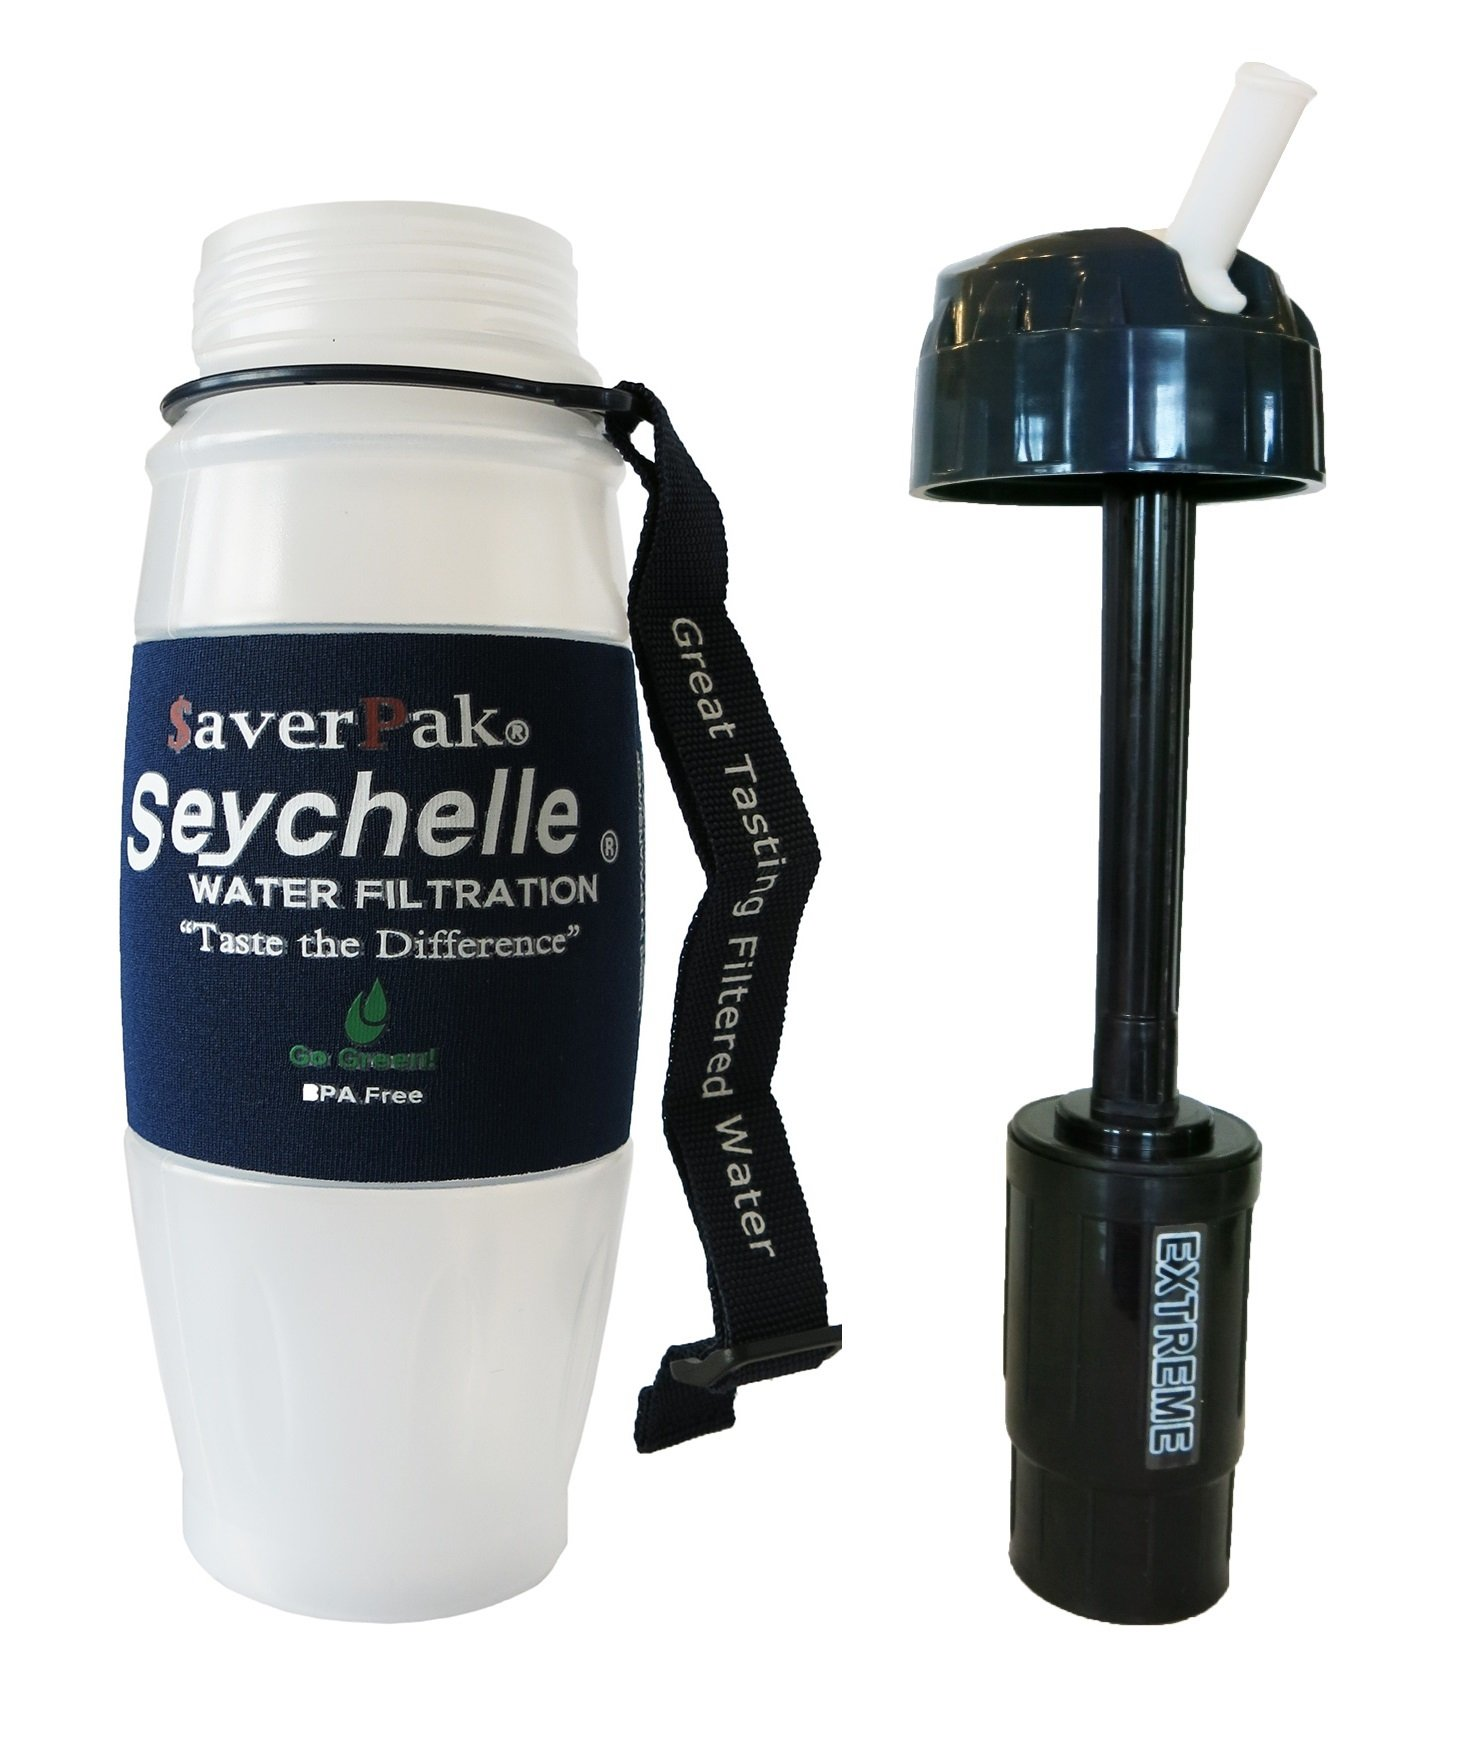 $averPak 2 Pack - Includes 2 Seychelle 28oz Flip Top Water Filtration Bottles with the Seychell EXTREME RAD/ADV Filters and 2 Additional Spare EXTREME RAD/ADV Filters by $averPak (Image #8)